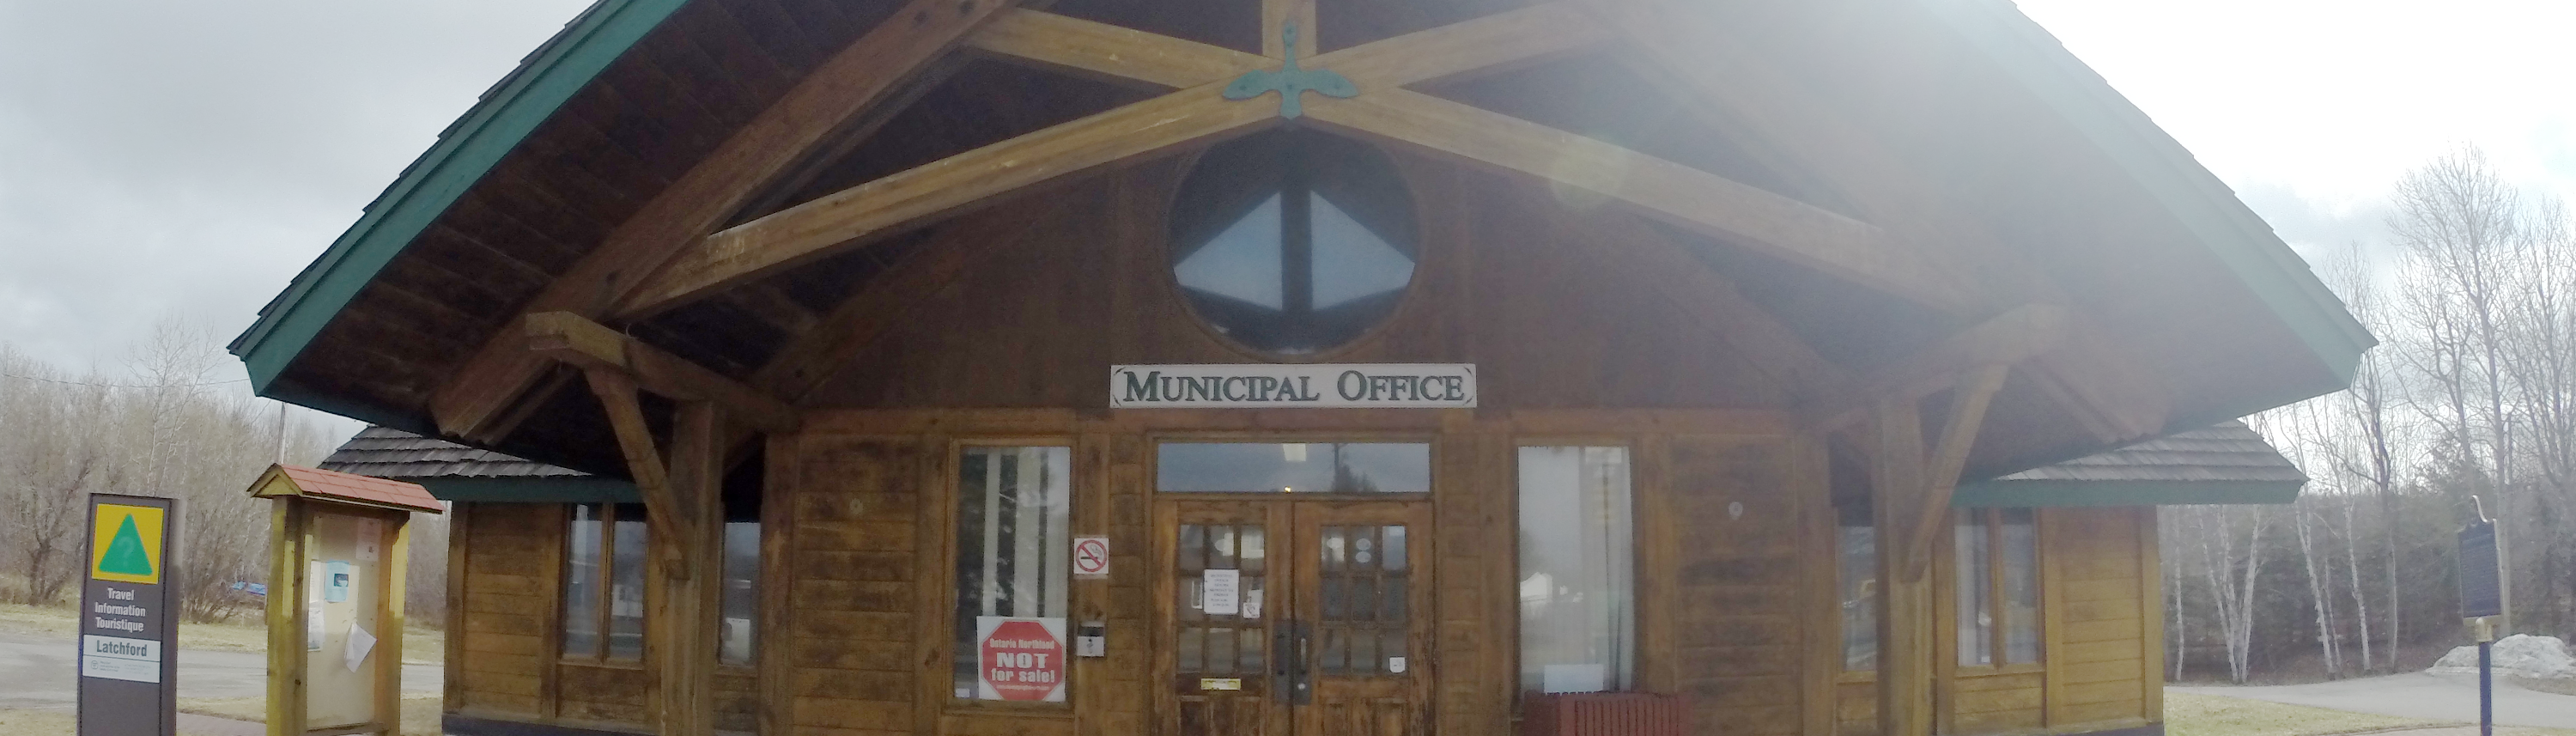 Latchford Municipal Office, Latchford Ontario